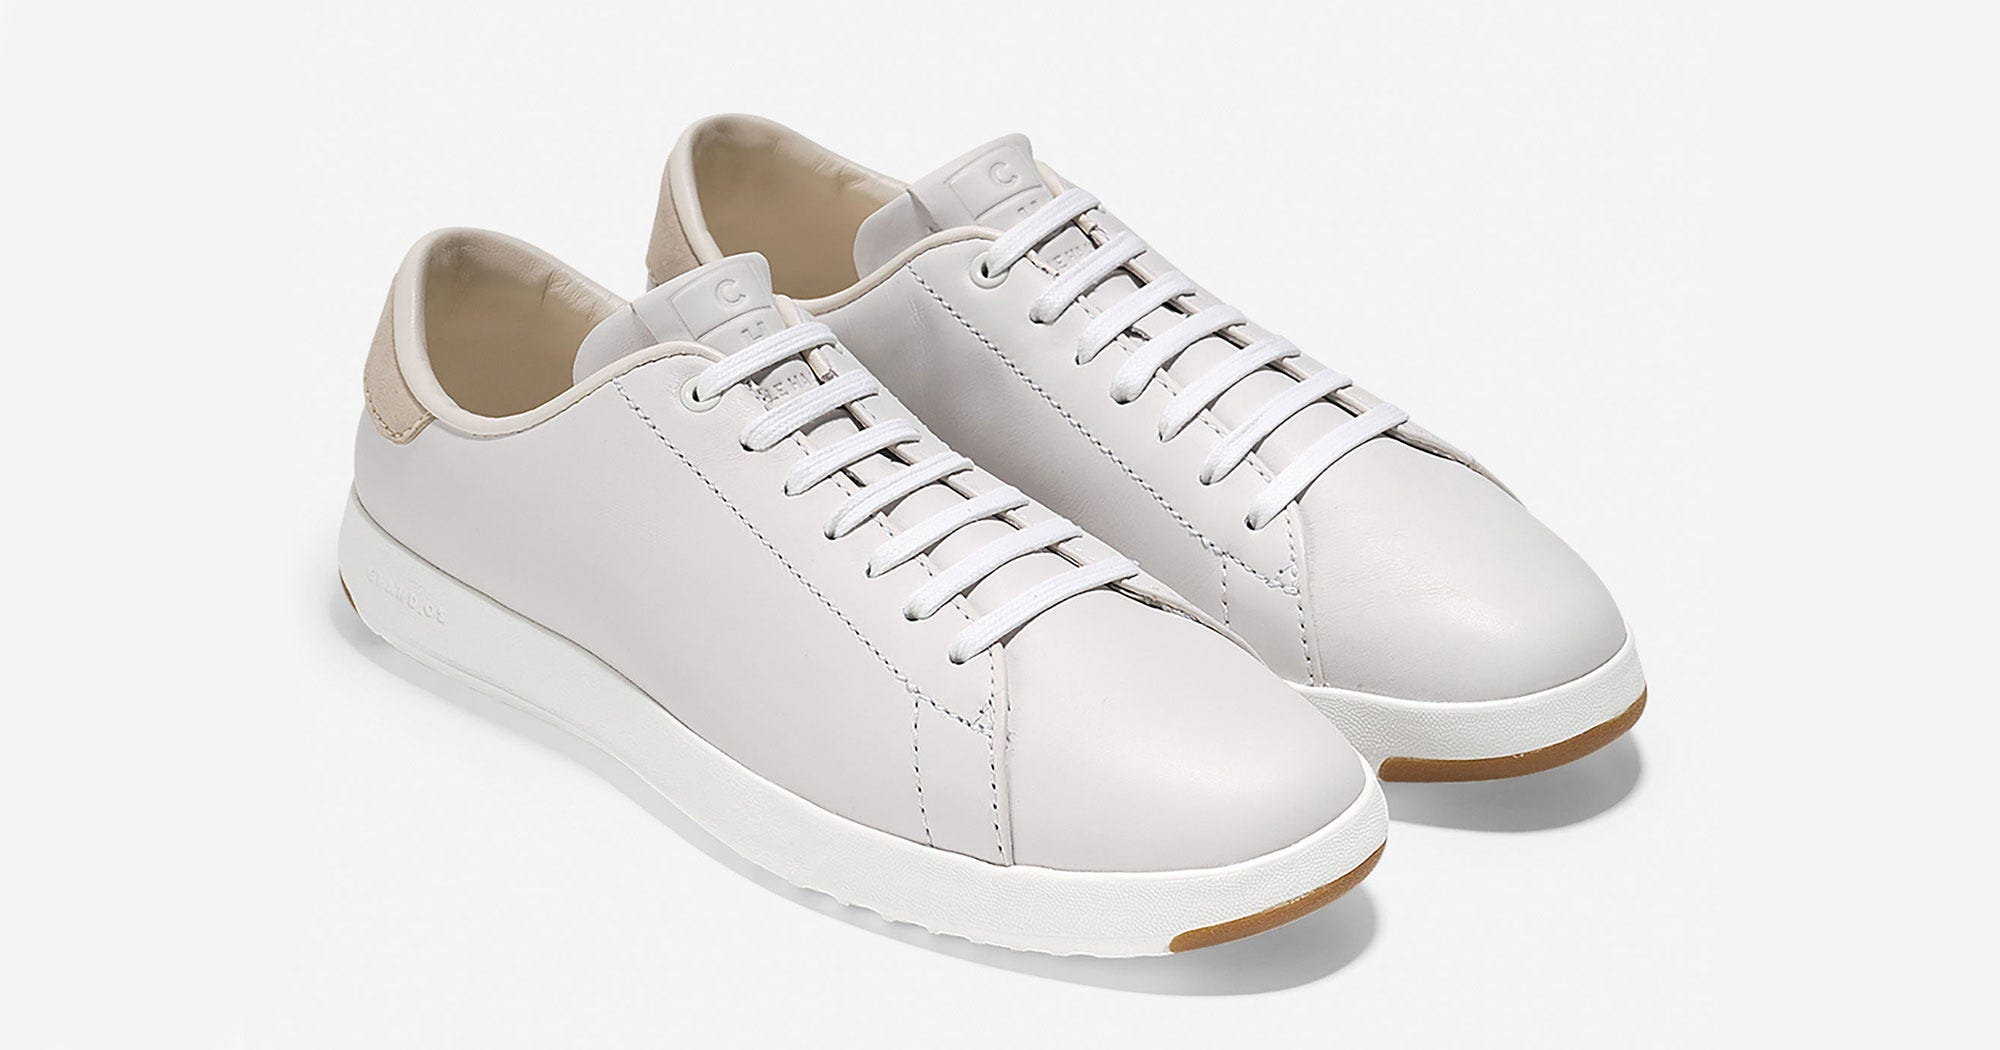 07518e2986 Best White Sneakers For Women - 2019 Cool New Trends